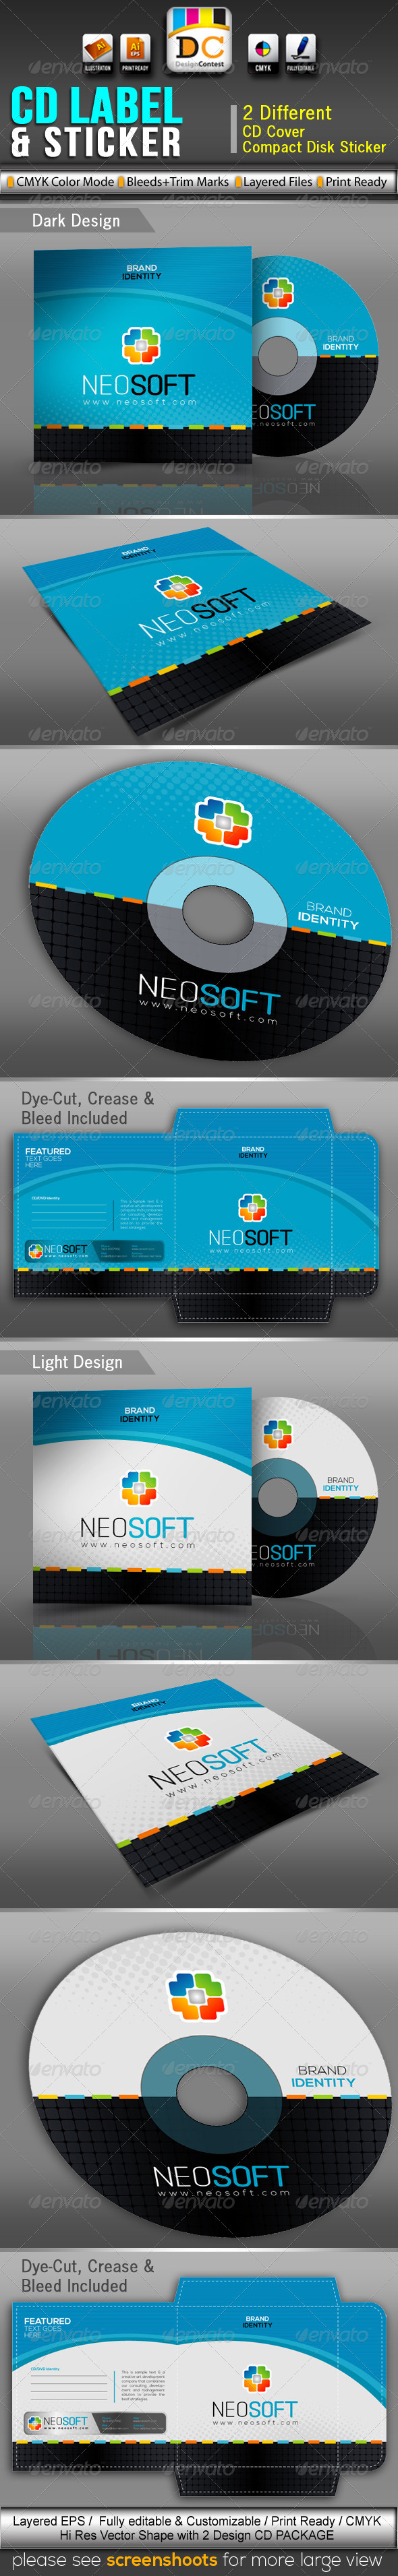 NeoSoft_CD Sleeve/Label & Sticker